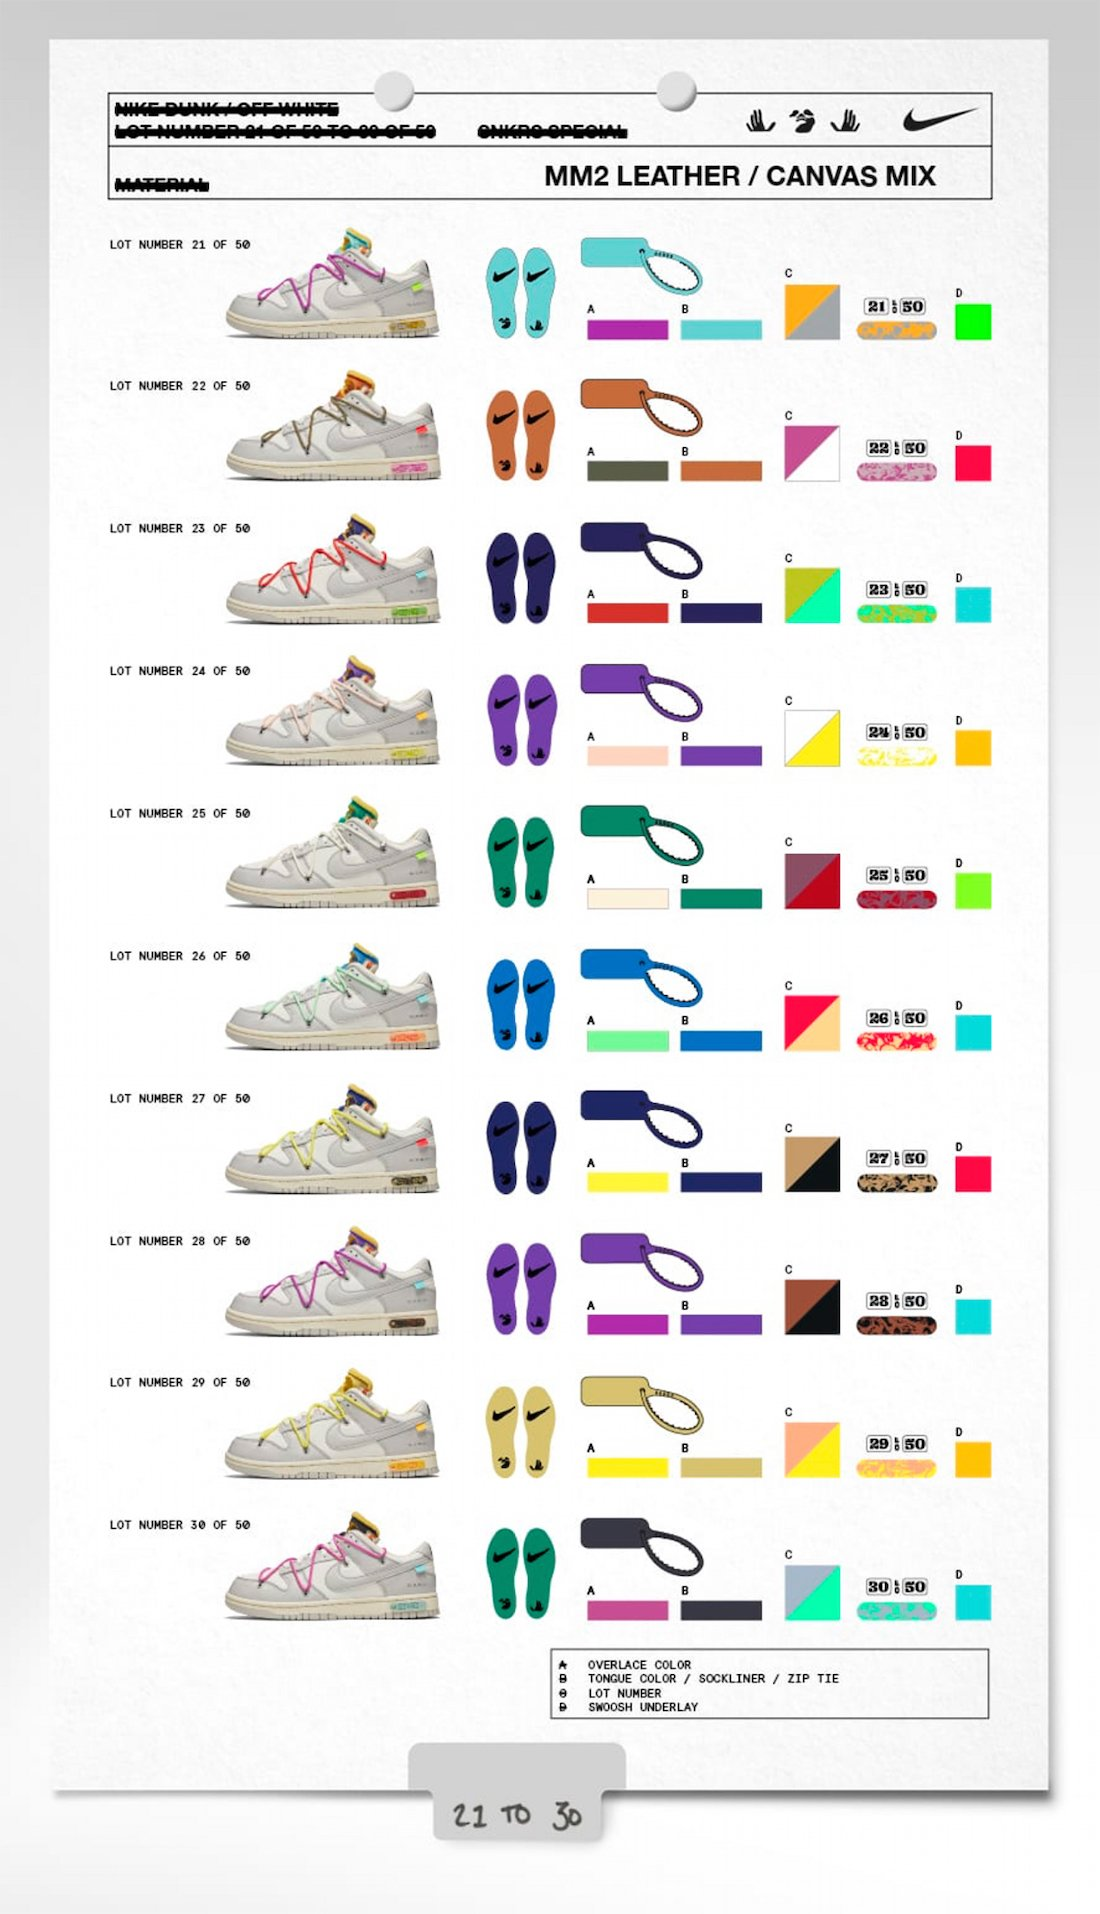 Off-White x Nike Dunk Low 21-30 Collection